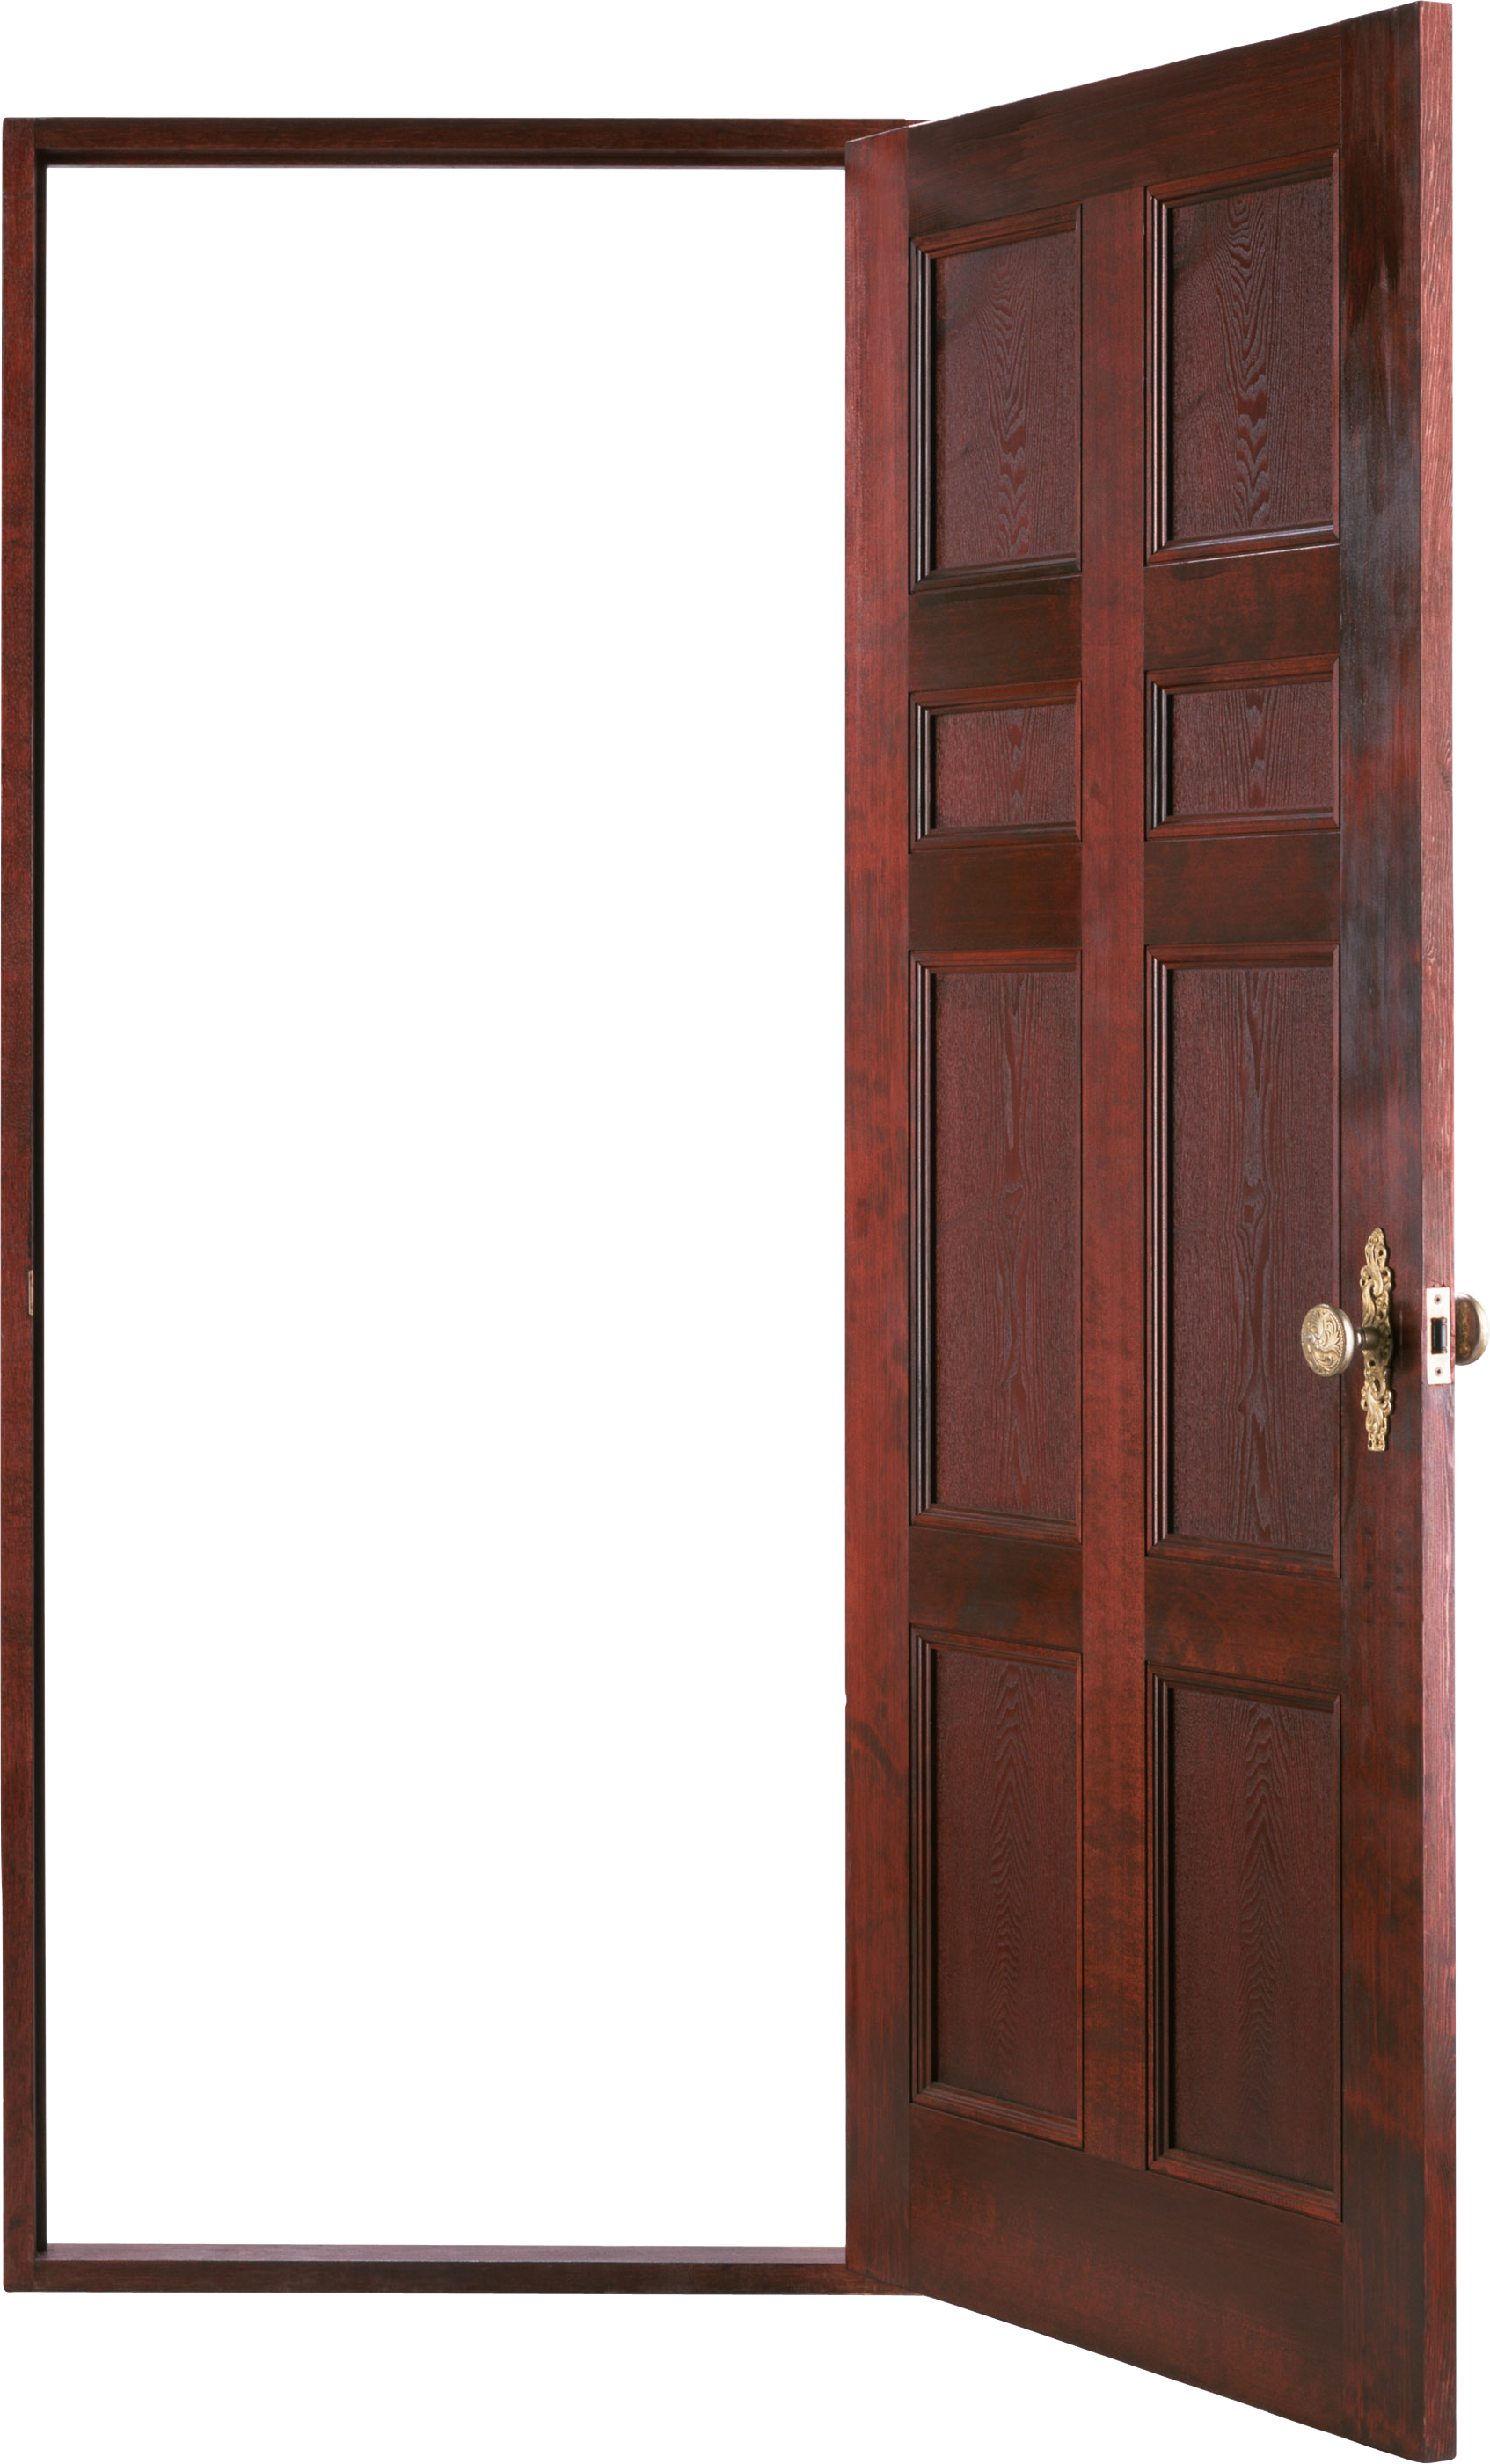 Open door png. Images wood